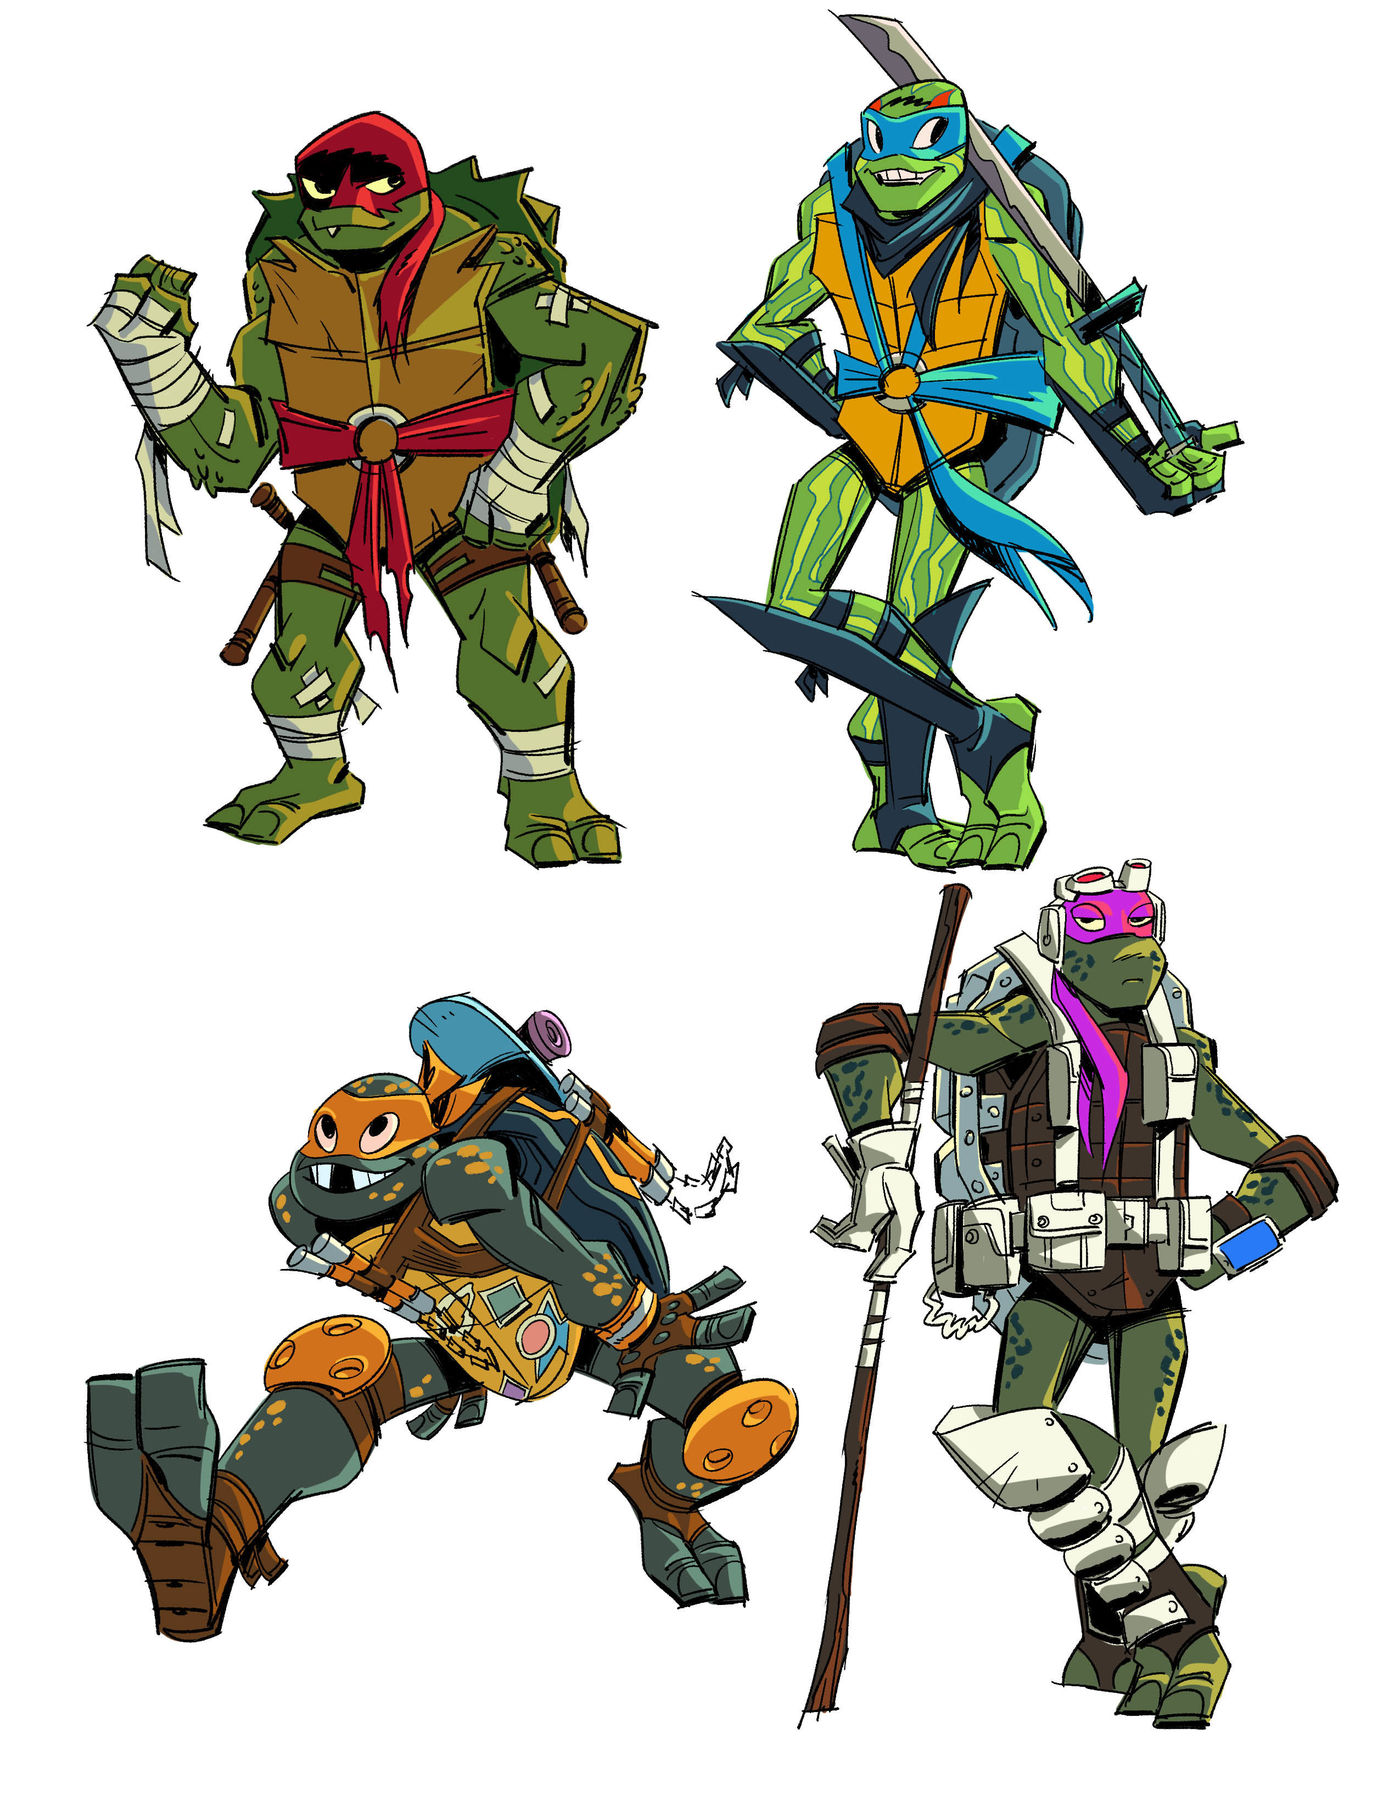 Exclusive The Creators Of Rise Of The Teenage Mutant Ninja Turtles Reveal Concept Art And The Show S New Vision